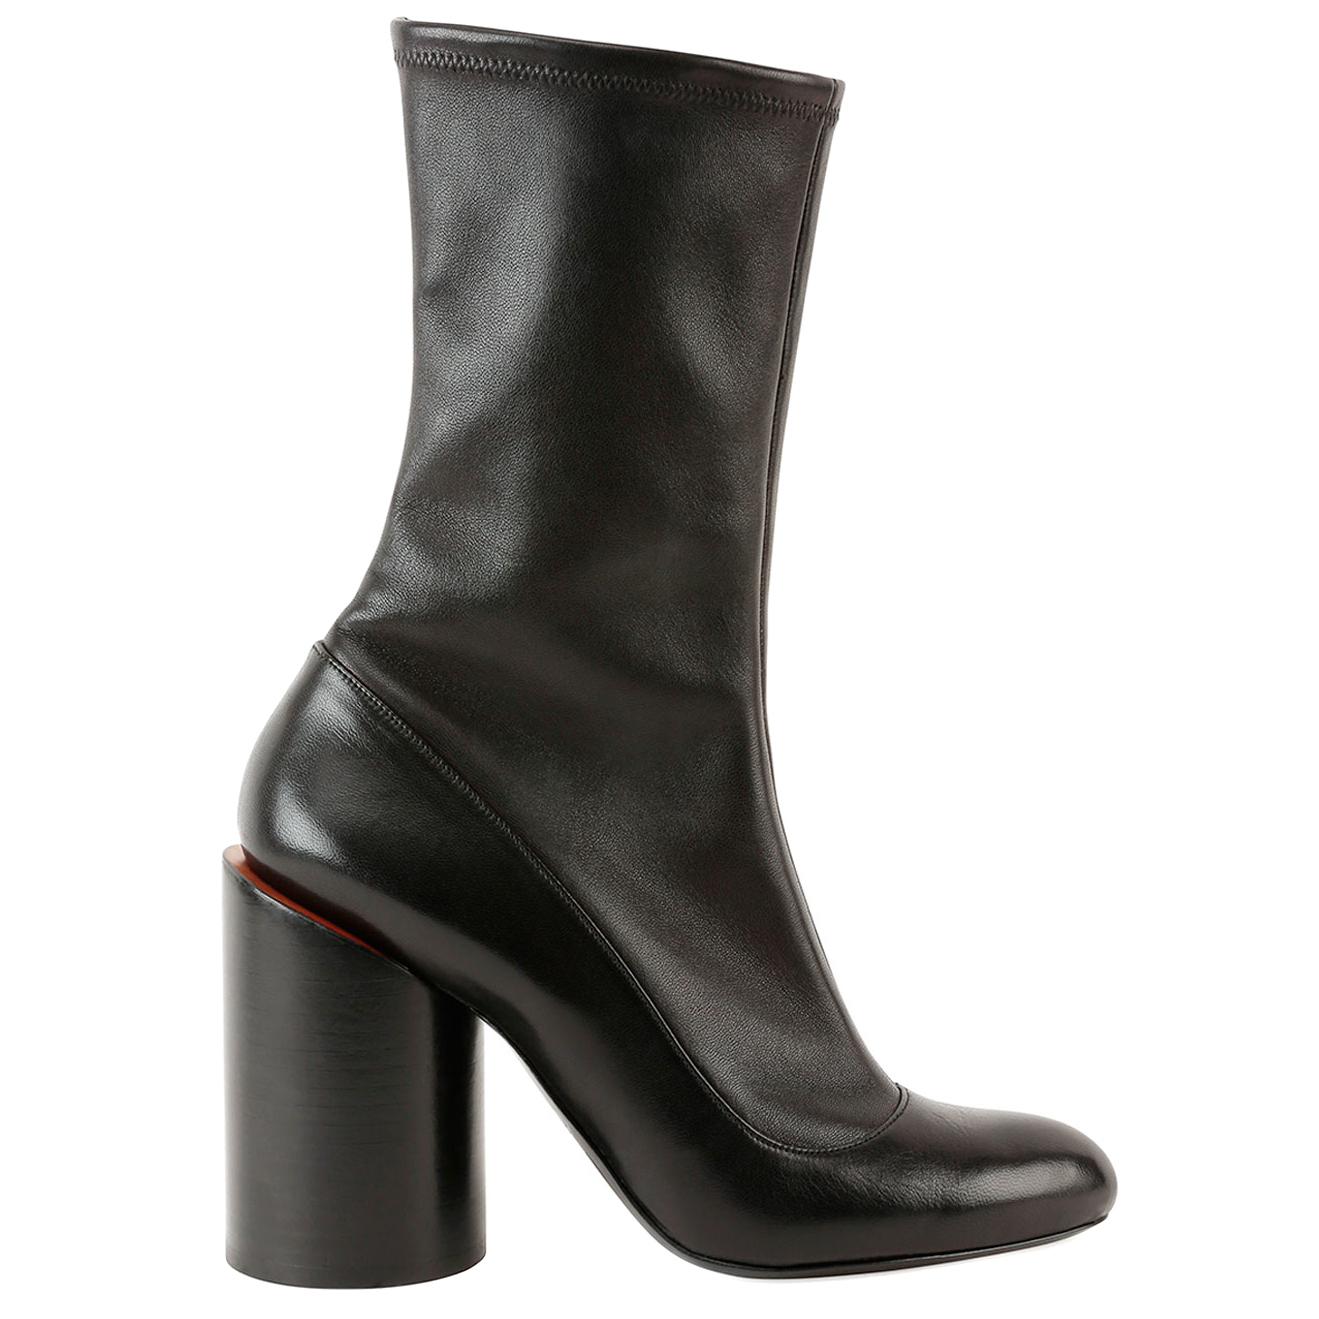 Givenchy Cylinder-Heel Black Leather Boots